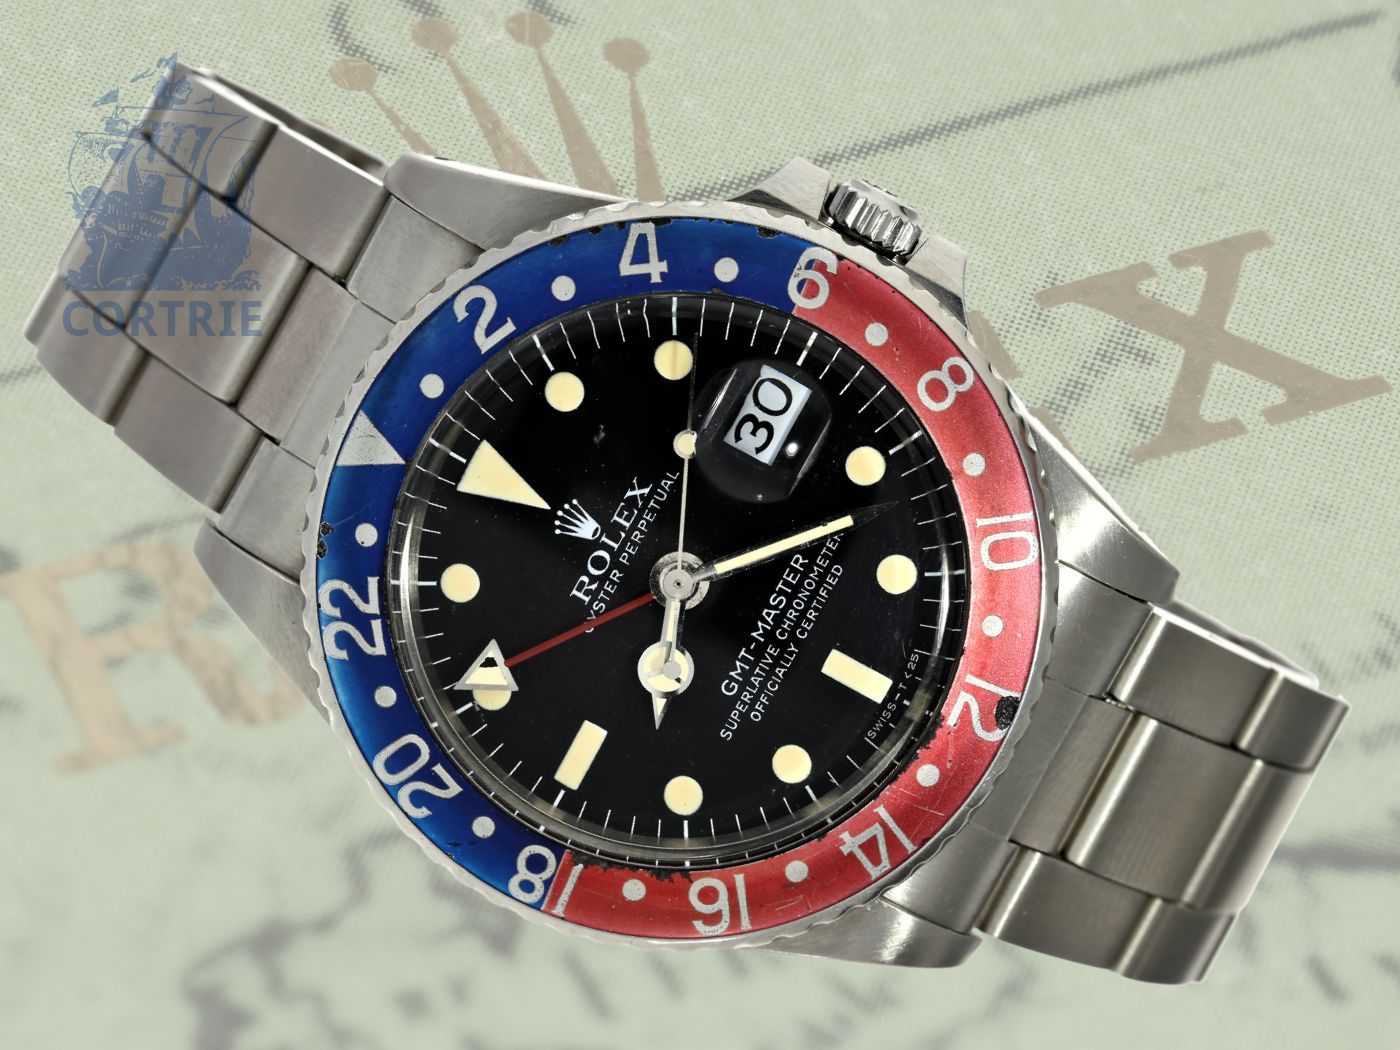 Wristwatch: extremely rare Rolex GMT Master ref. 1675 from 1968 with box and certificates-